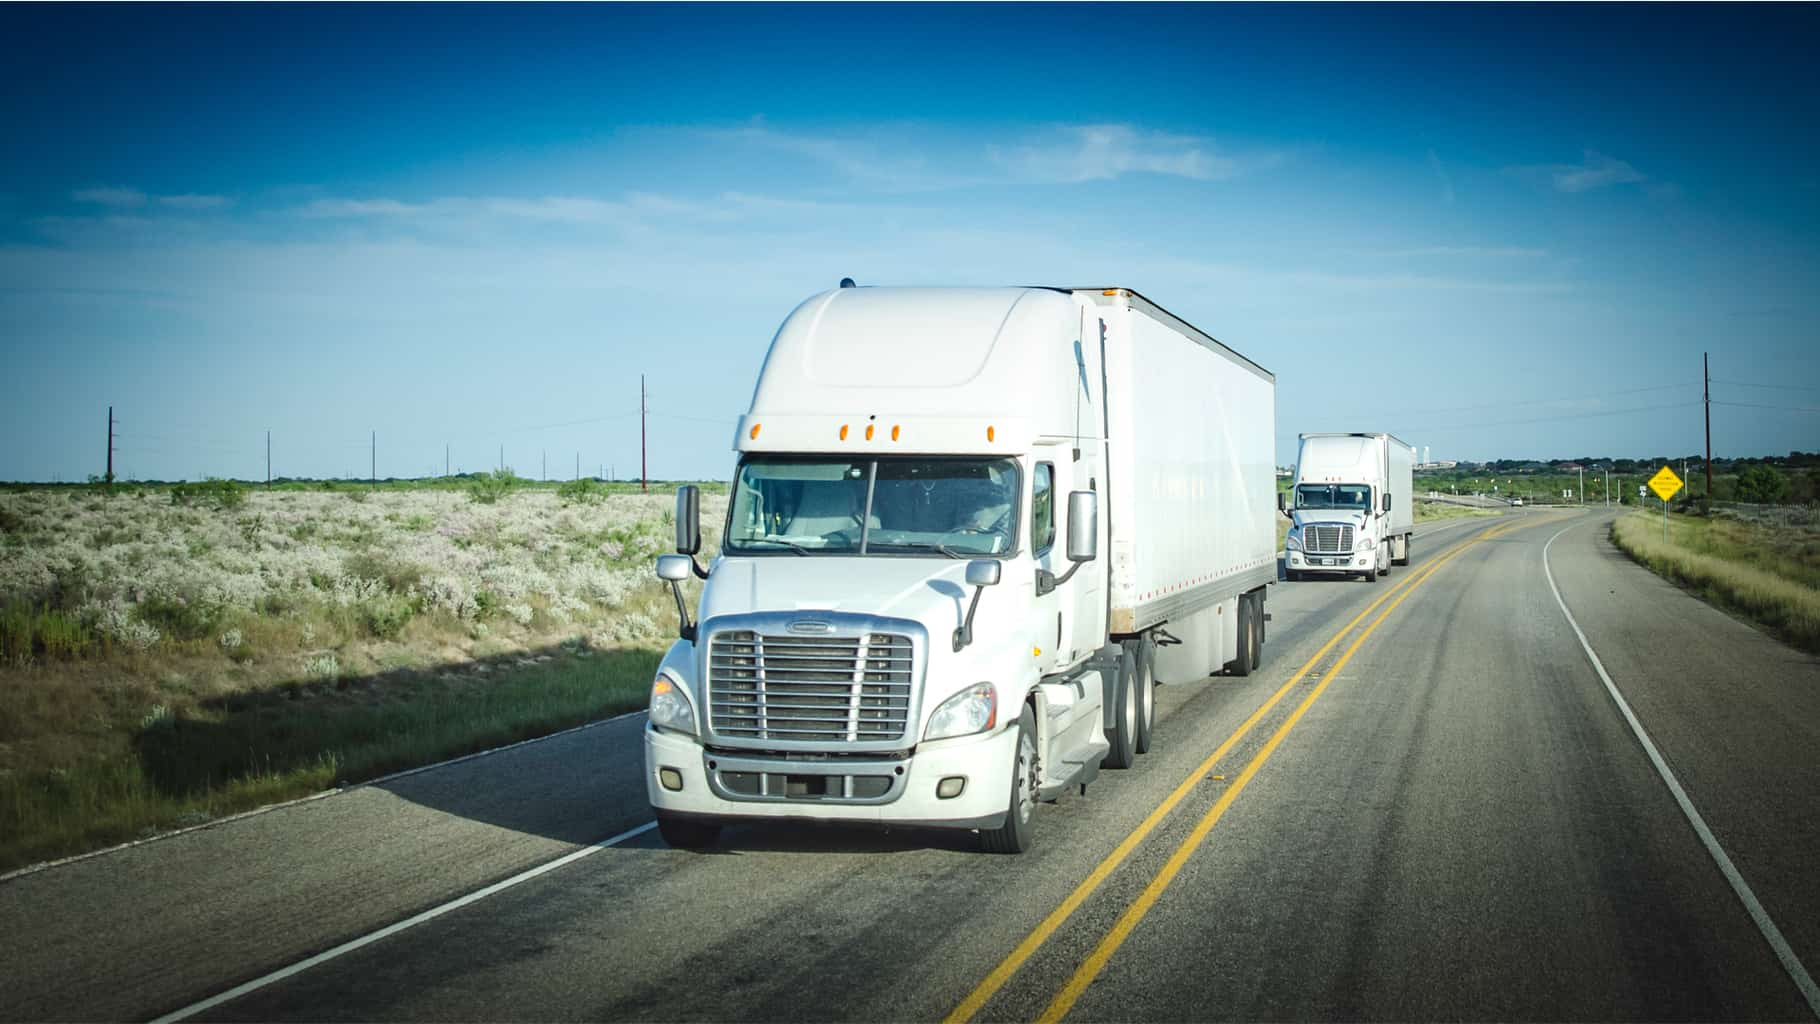 Mays Chemical selects Red TMS, saves $100,000 in transportation costs